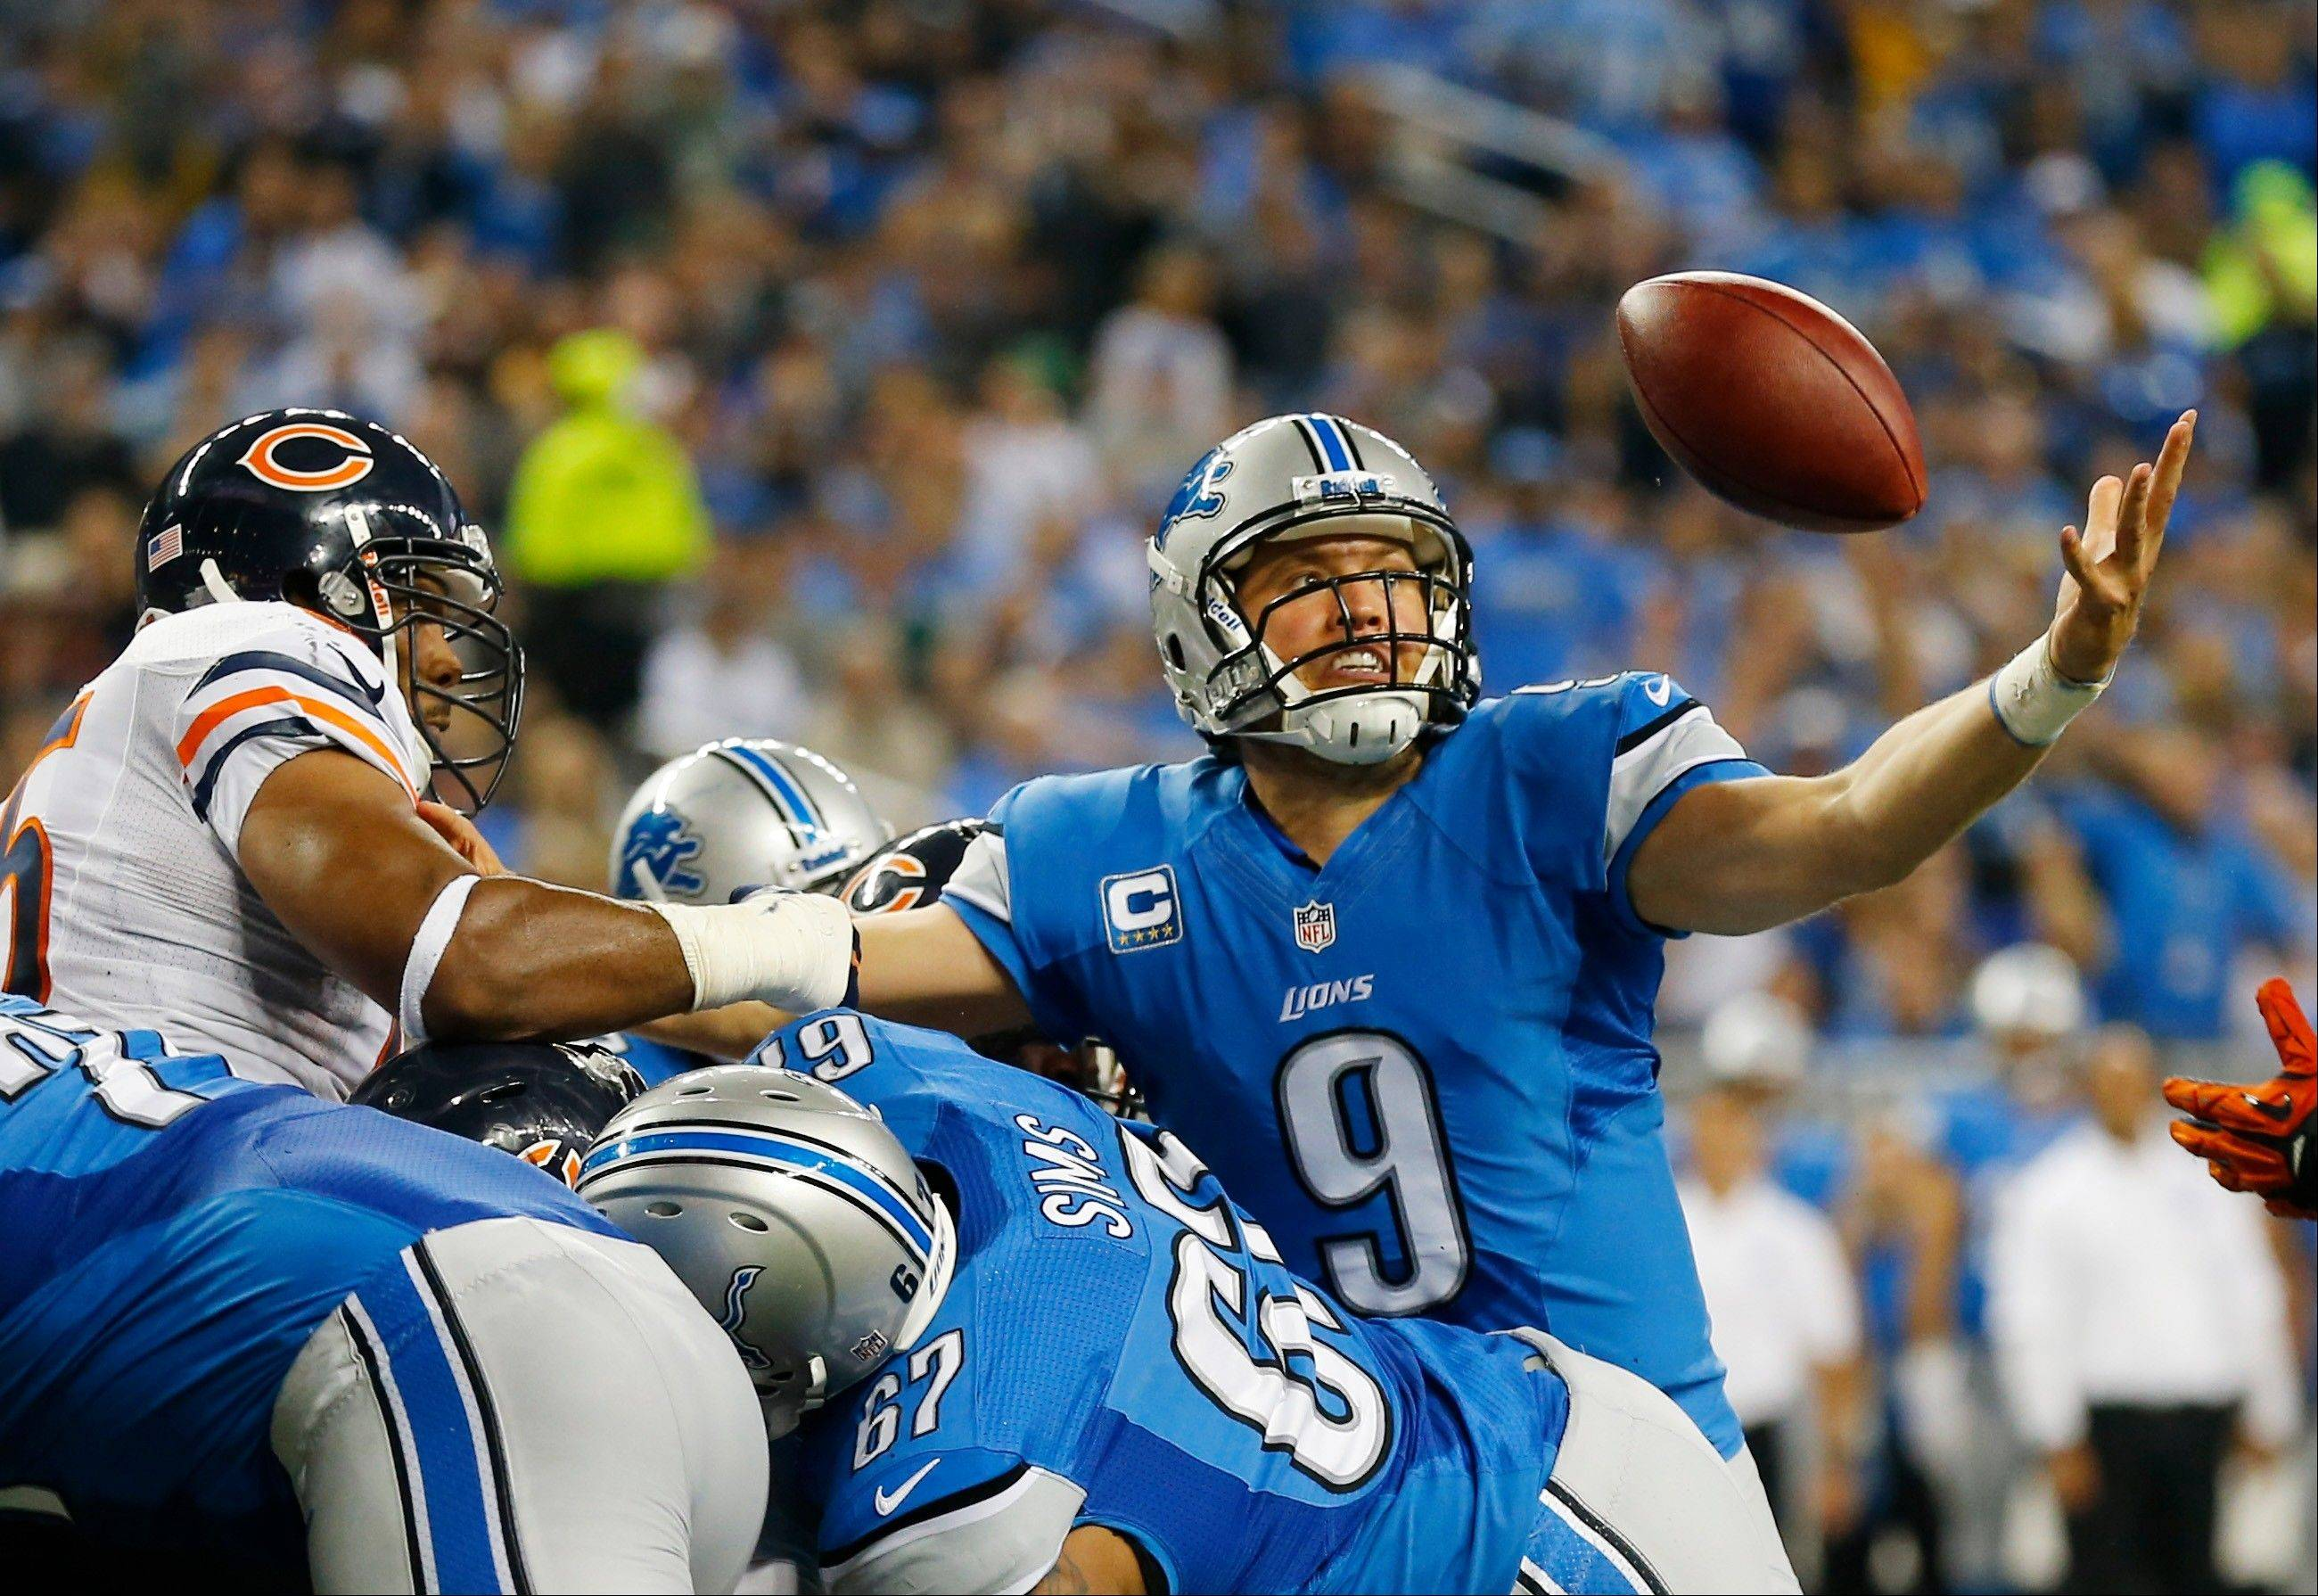 Detroit Lions quarterback Matthew Stafford (9) reaches out to recover his own fumble, and score as he crossed the goal line during the second quarter.